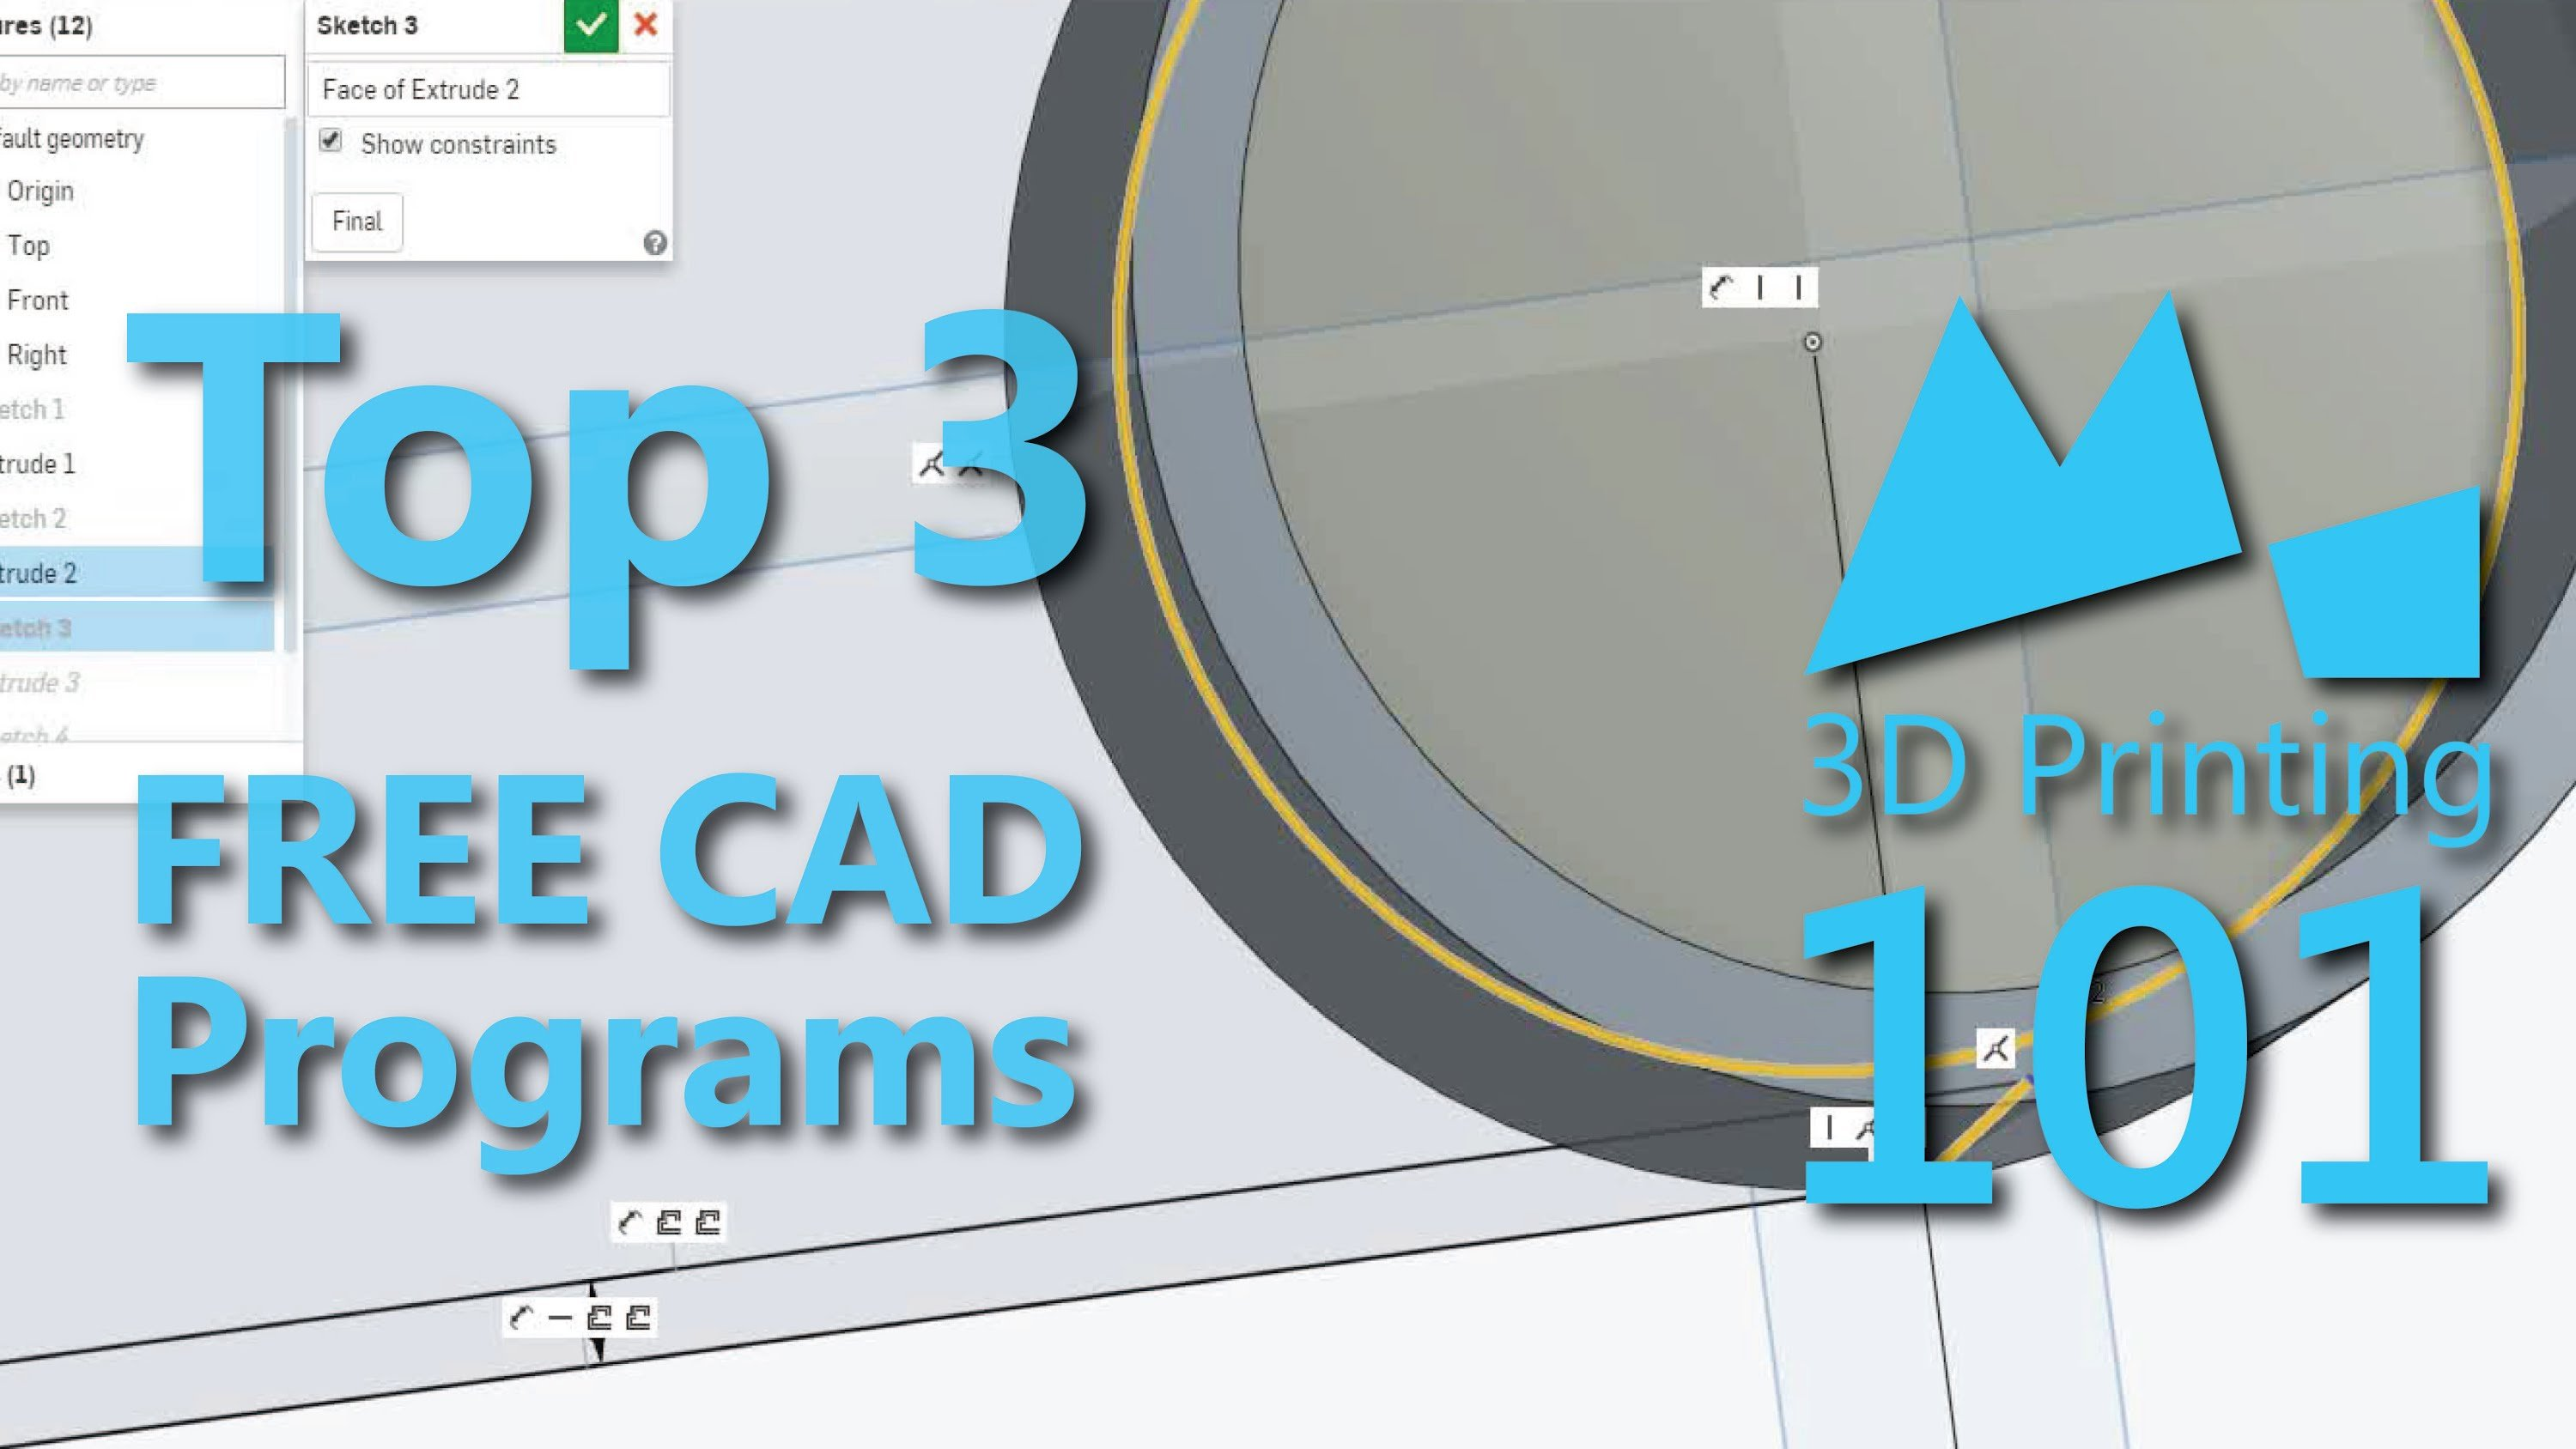 Top 3 free cad for 3dprinting adafruit industries for Online cad program